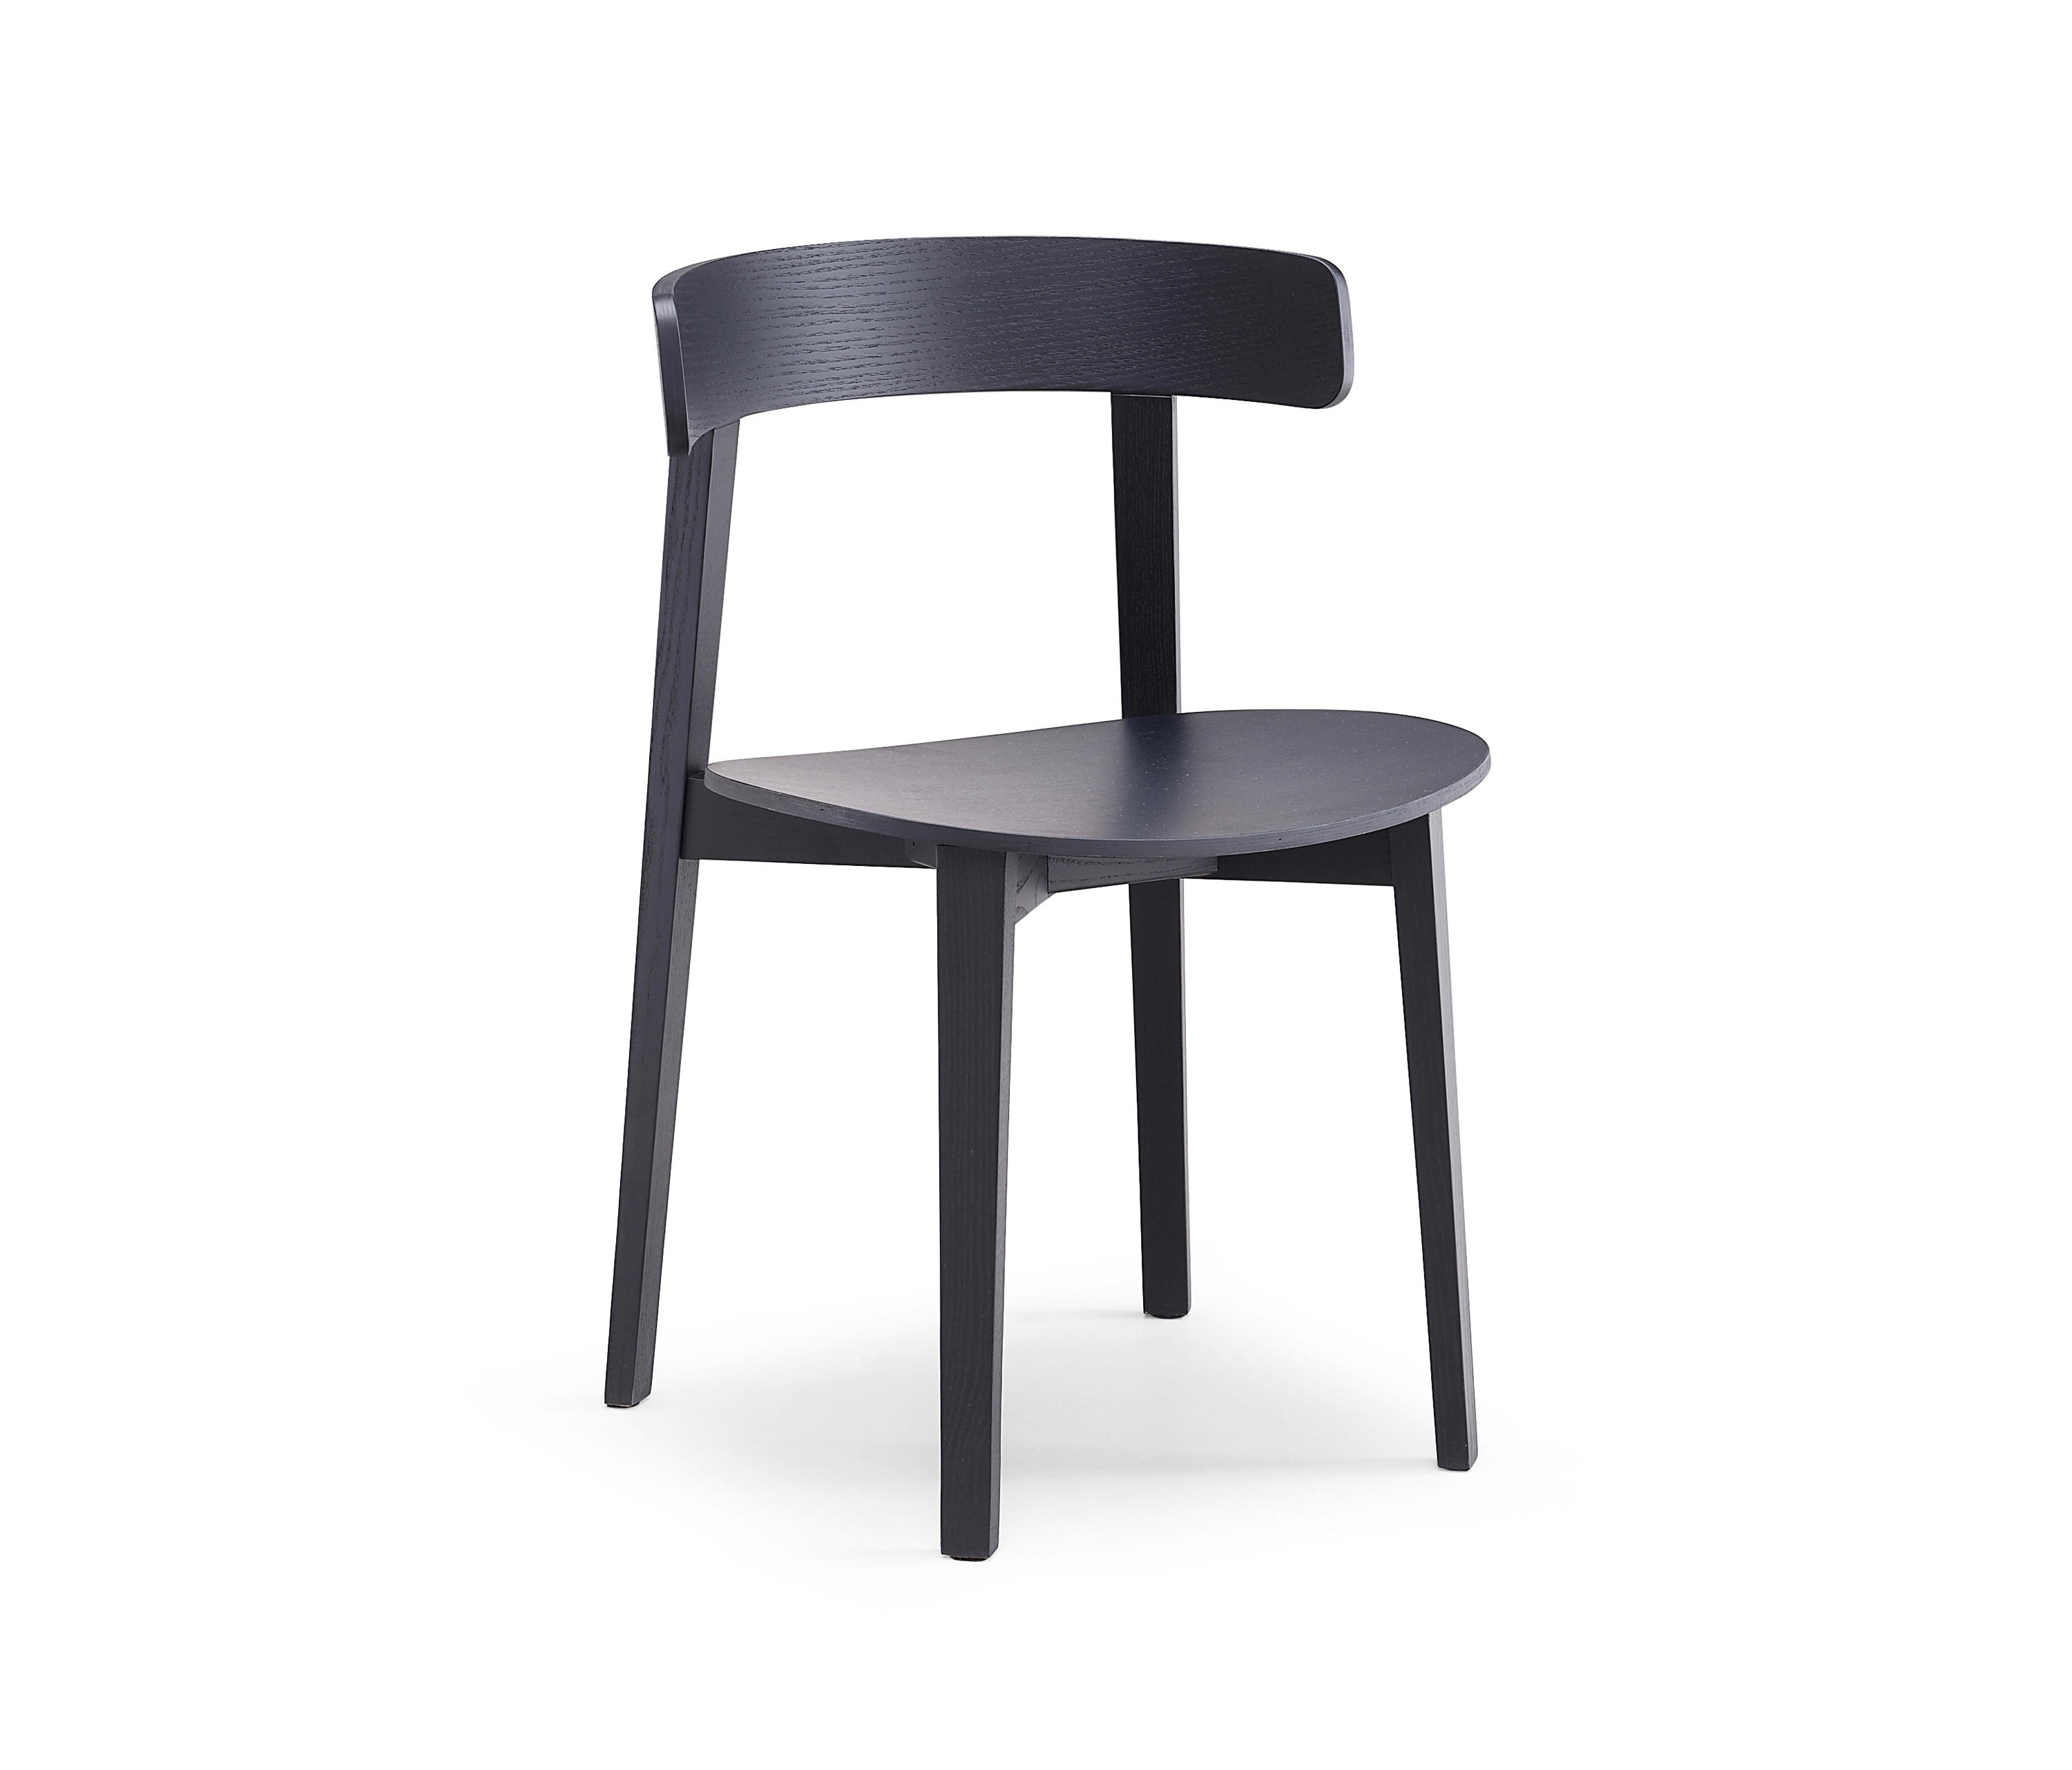 Maya S By Midj - Restaurant Chairs